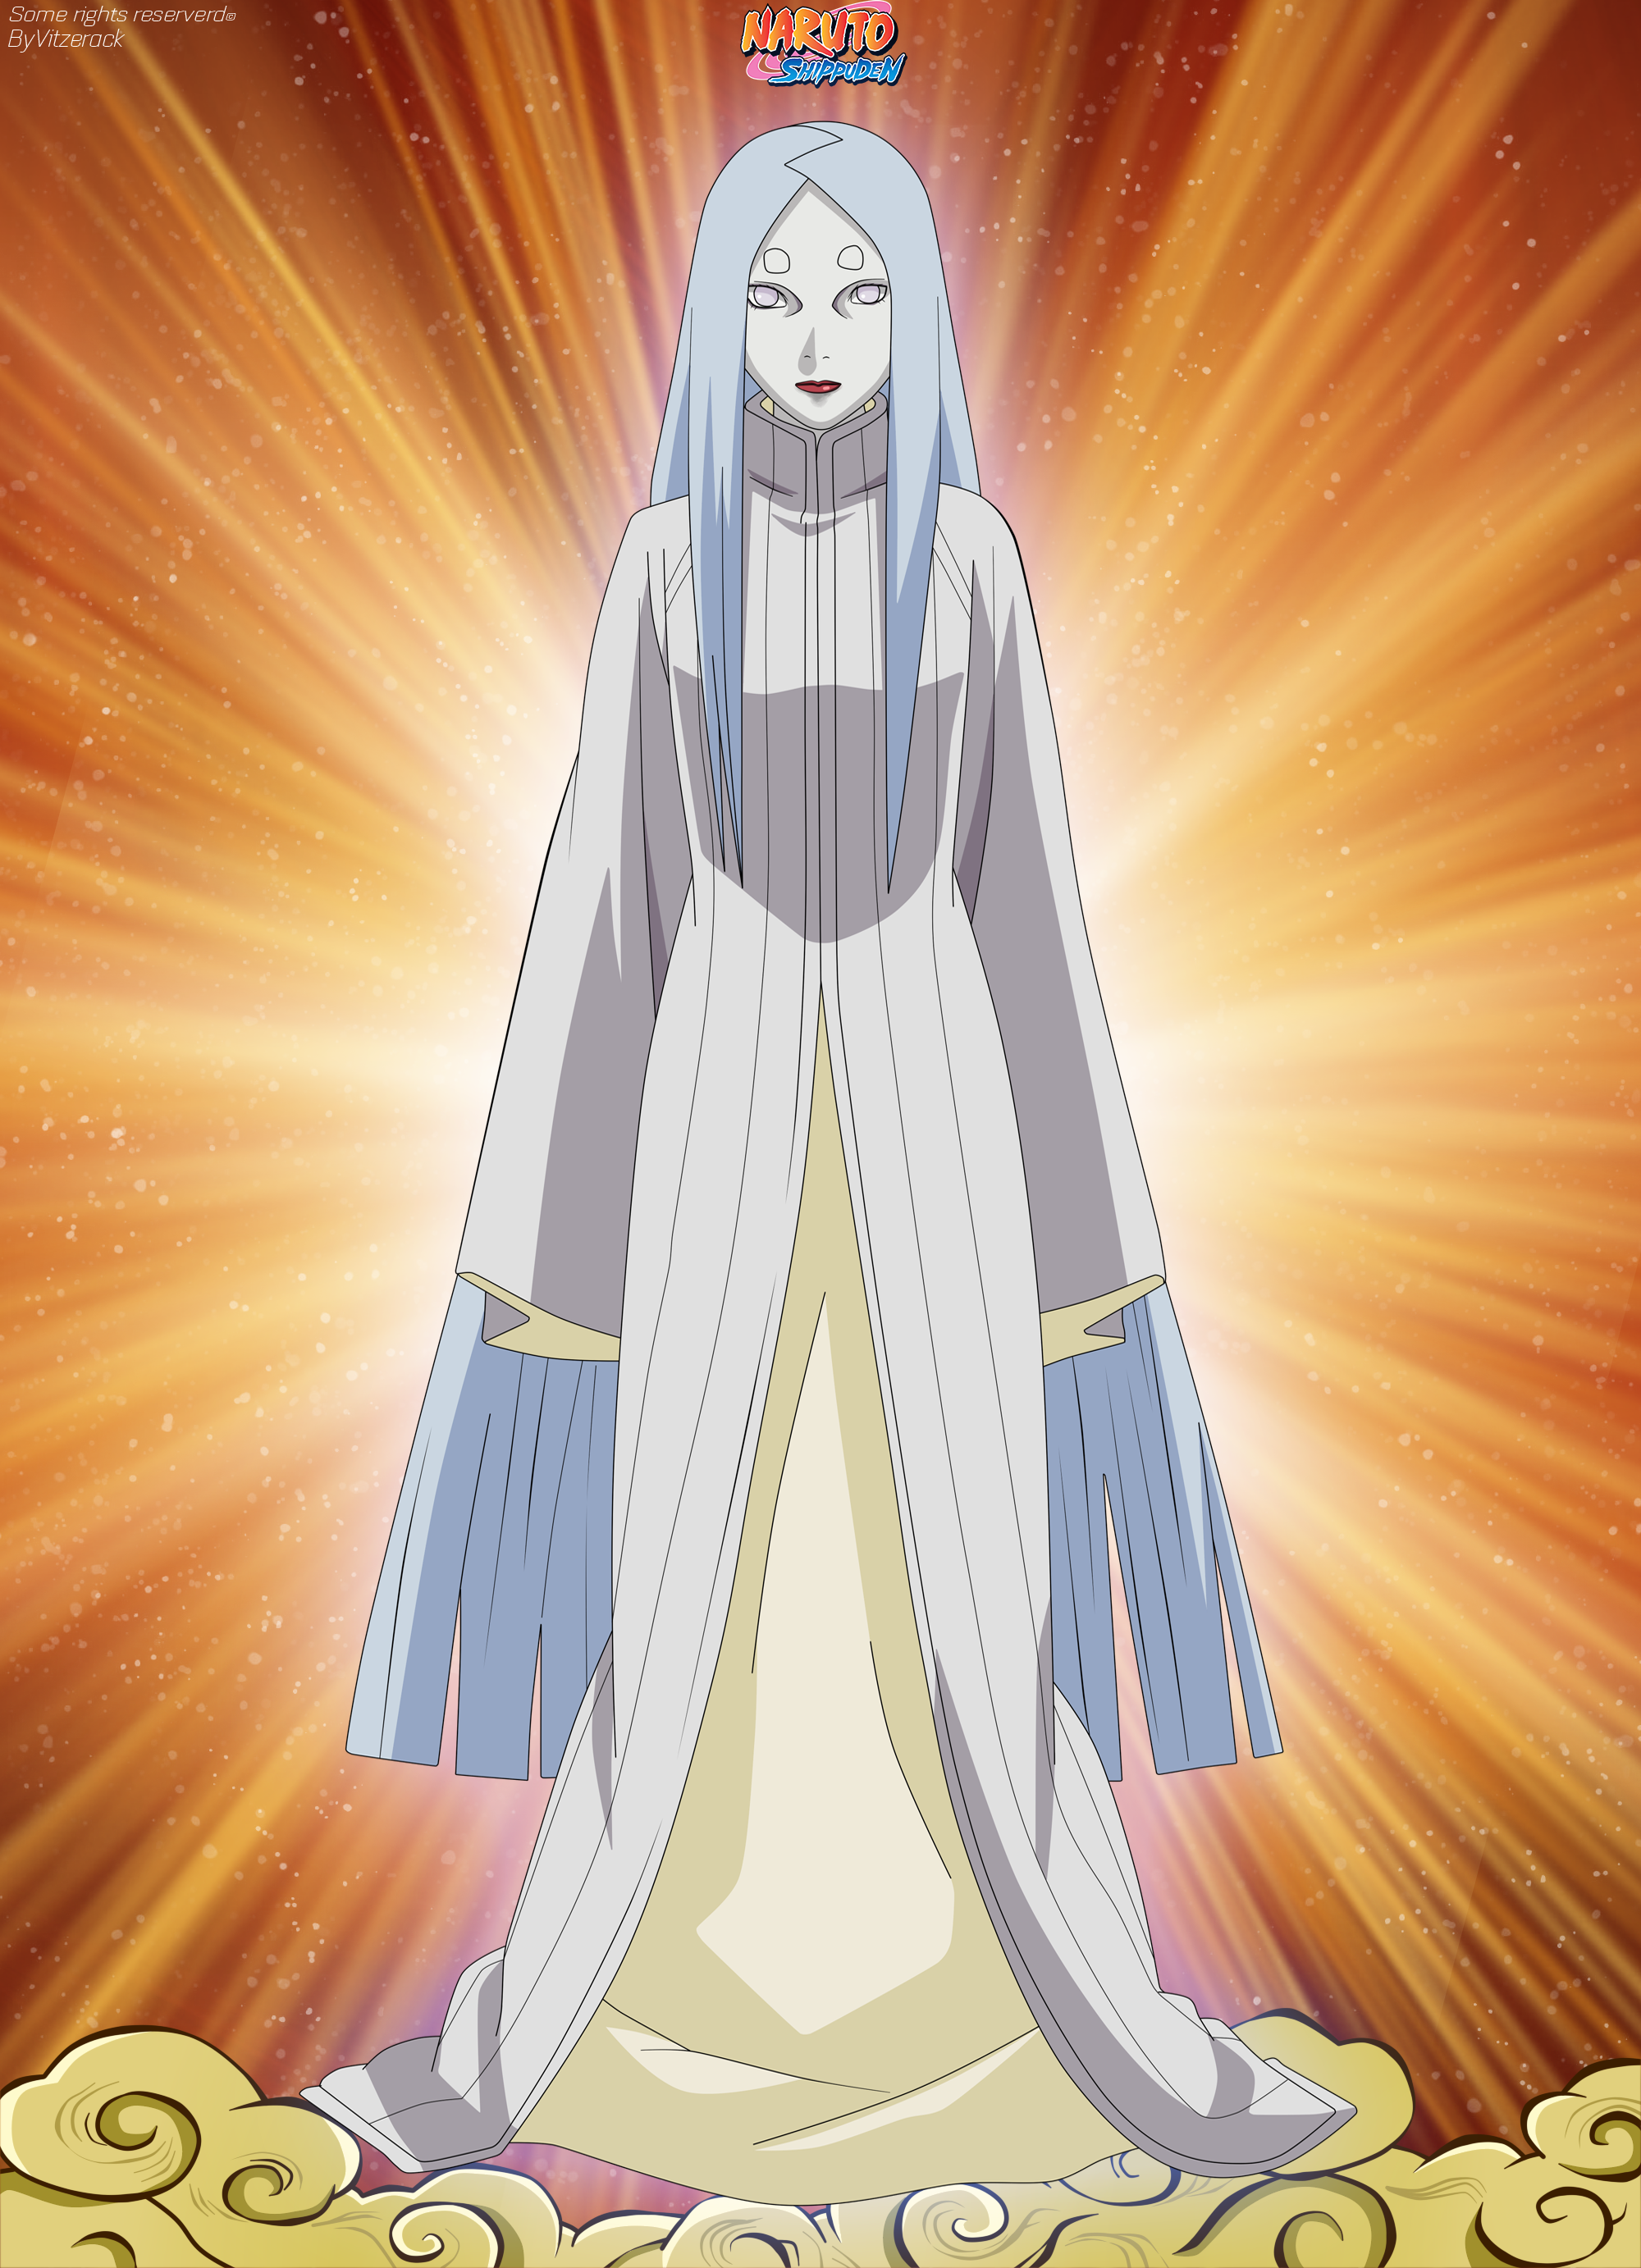 Watch naruto episode 136 english subbed online dating 5